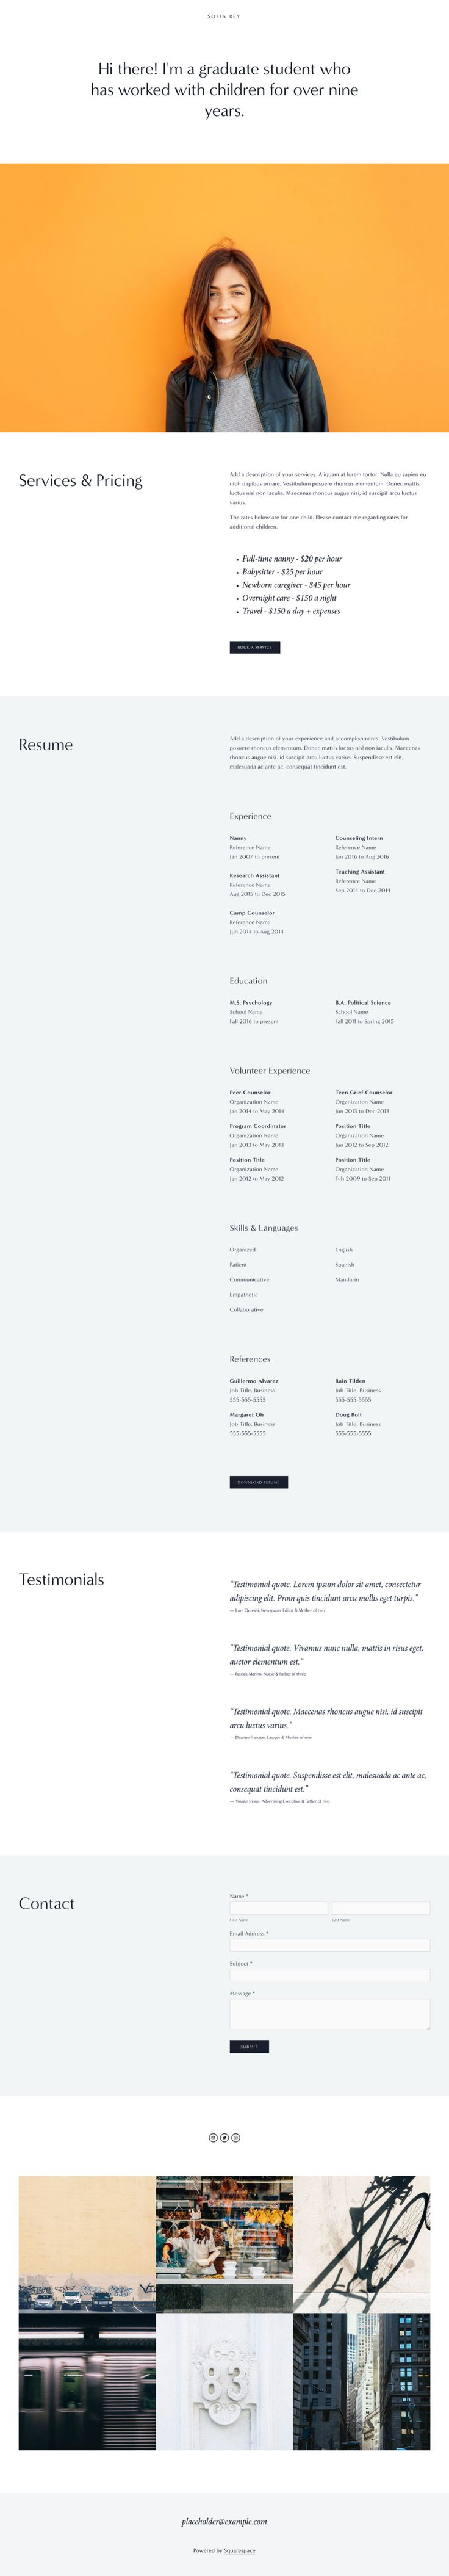 39 sofia 39 is a one page personal template by squarespace. Black Bedroom Furniture Sets. Home Design Ideas